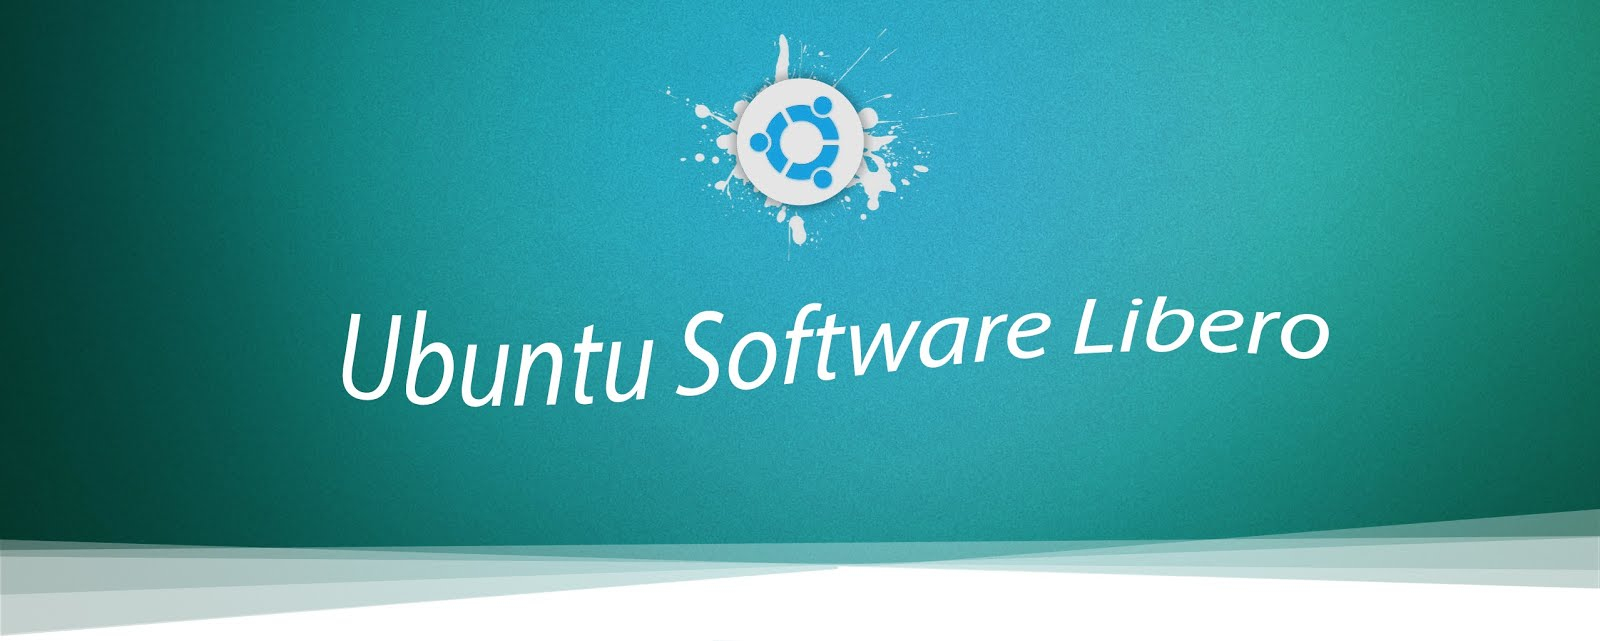 Ubuntu software libero the world of linux for Siti architetti famosi